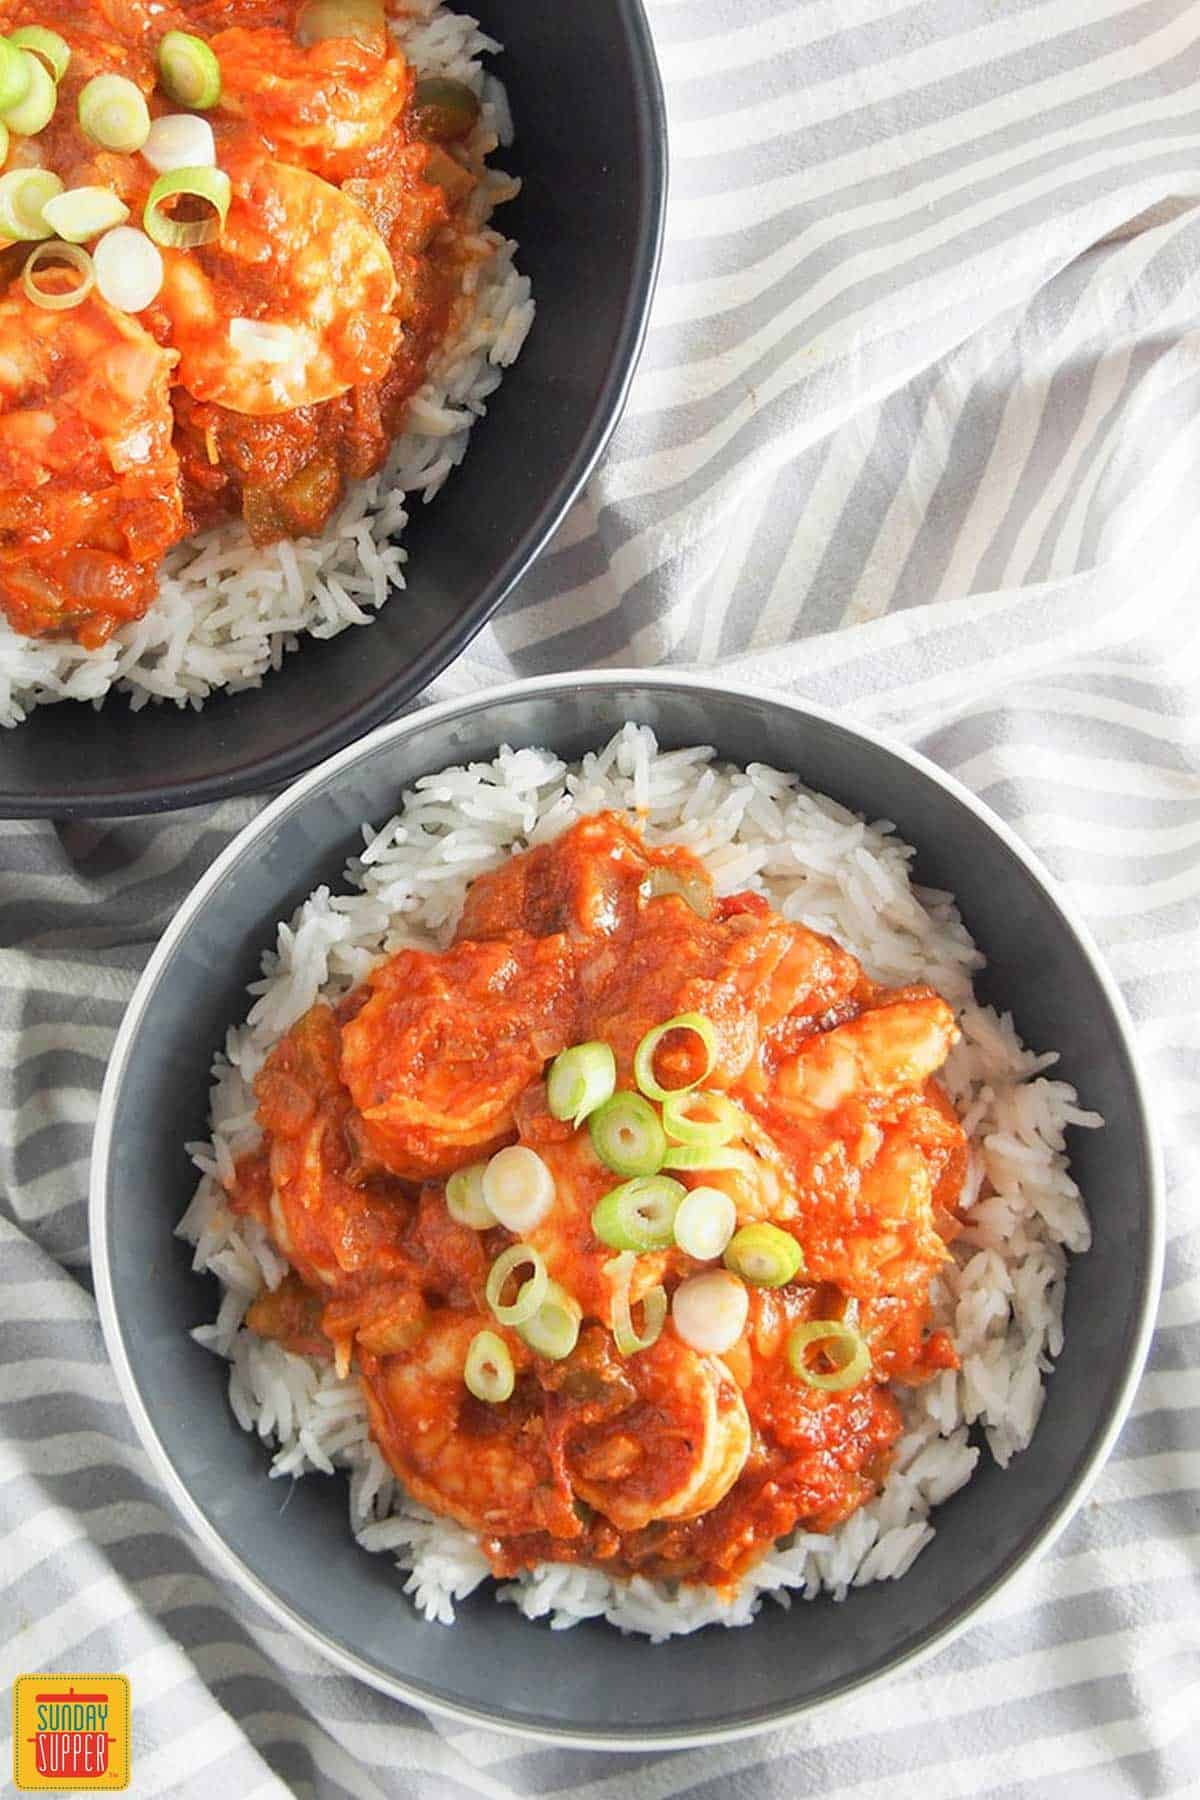 Two bowls of Shrimp creole over rice